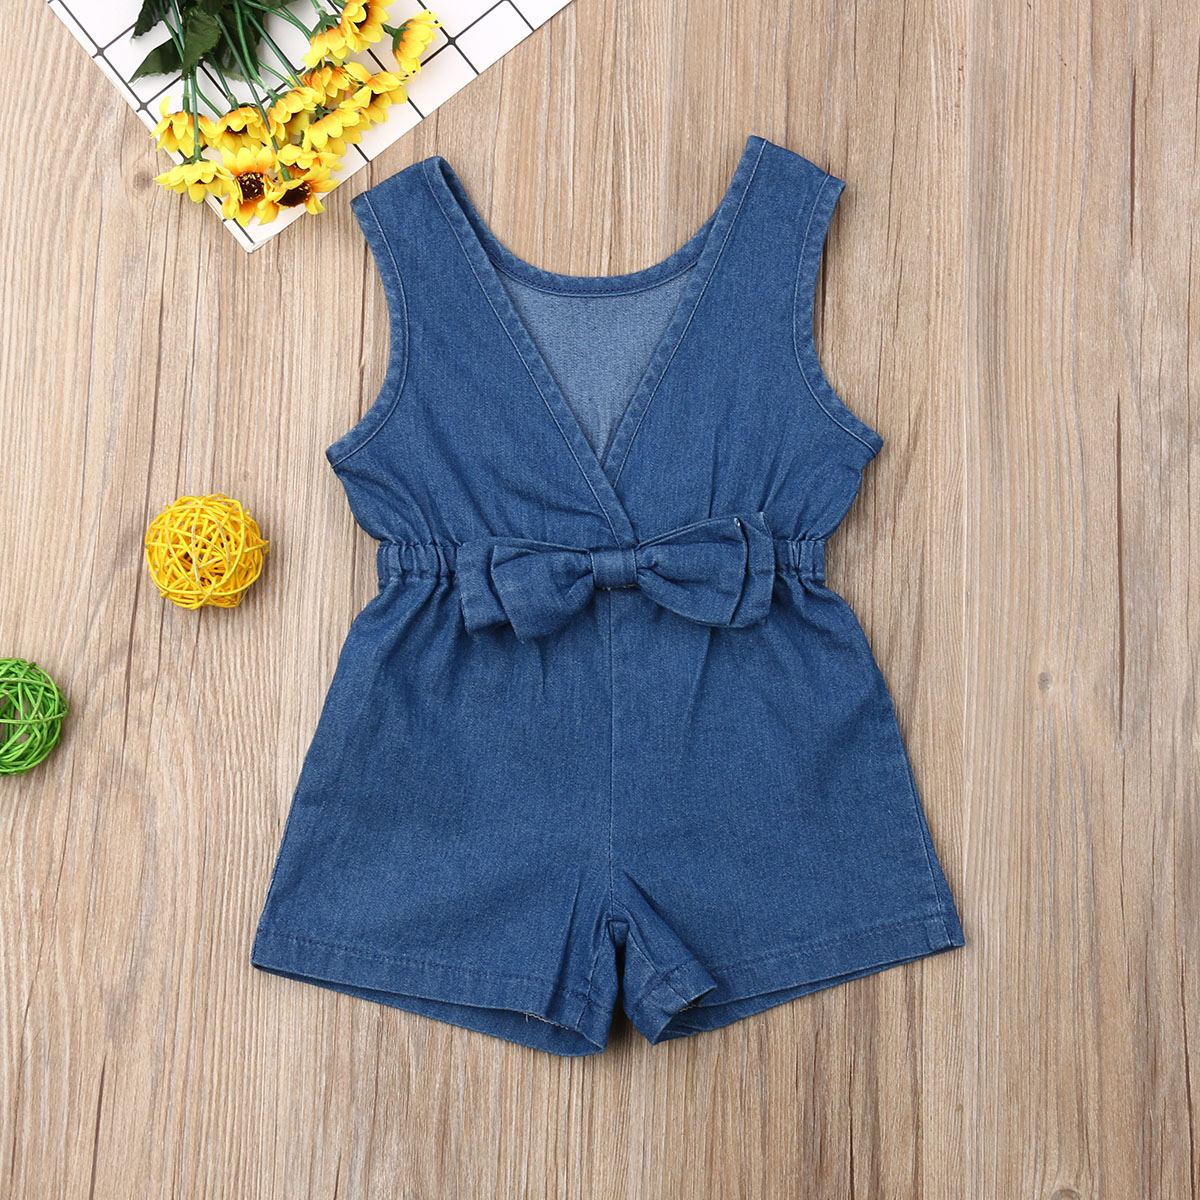 Pudcoco Summer Toddler Baby Girl Clothes Denim Solid Color Sleeveless One-Piece Outfit Romper Shorts Casual Summer Clothes